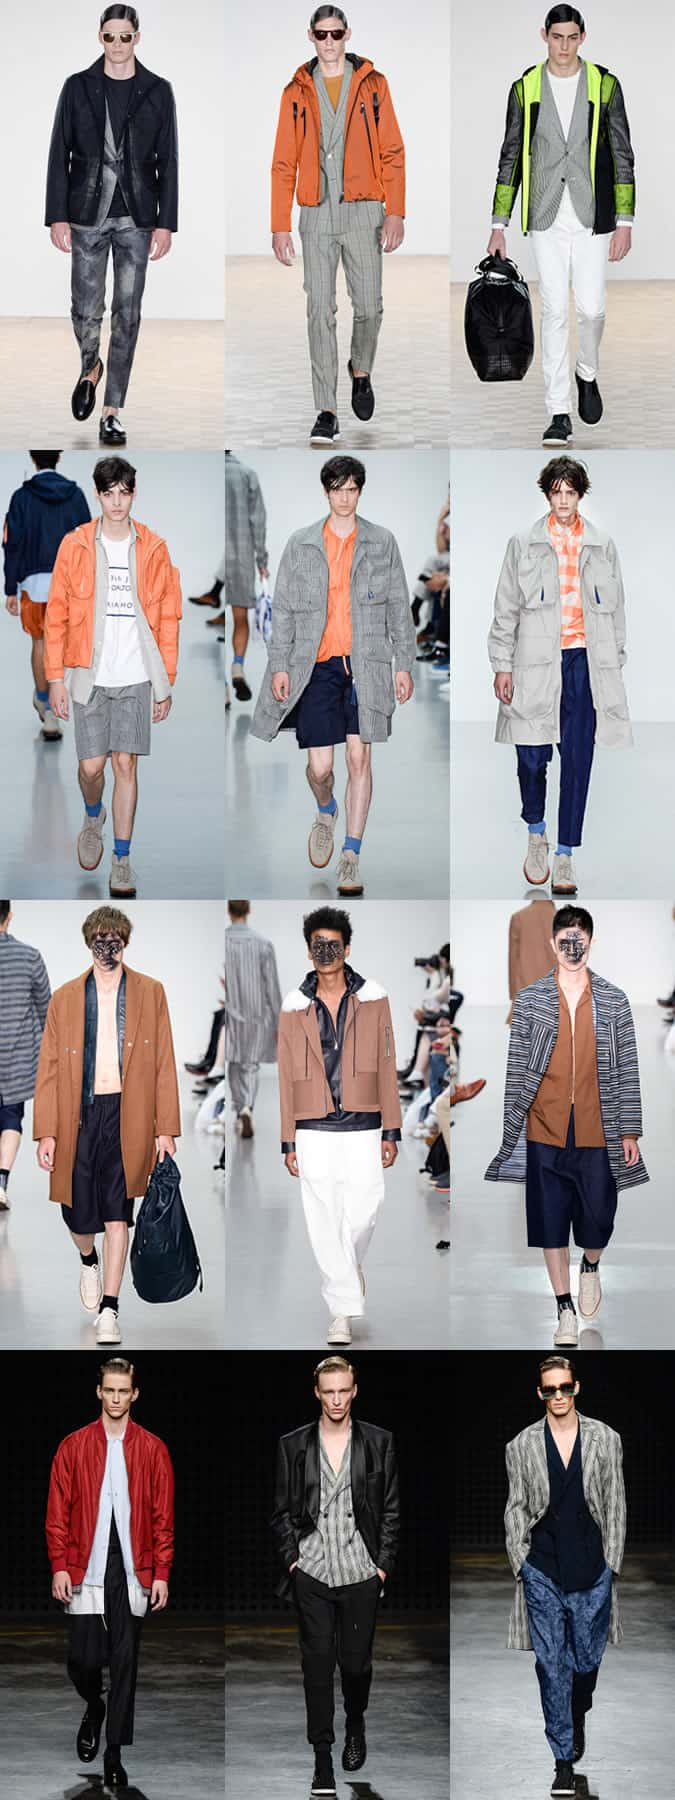 Men's Lightweight Layering on the menswear runways at Hardy Amies, Lou Dalton, Agi & Sam and Casely-Hayford - LC:M SS16